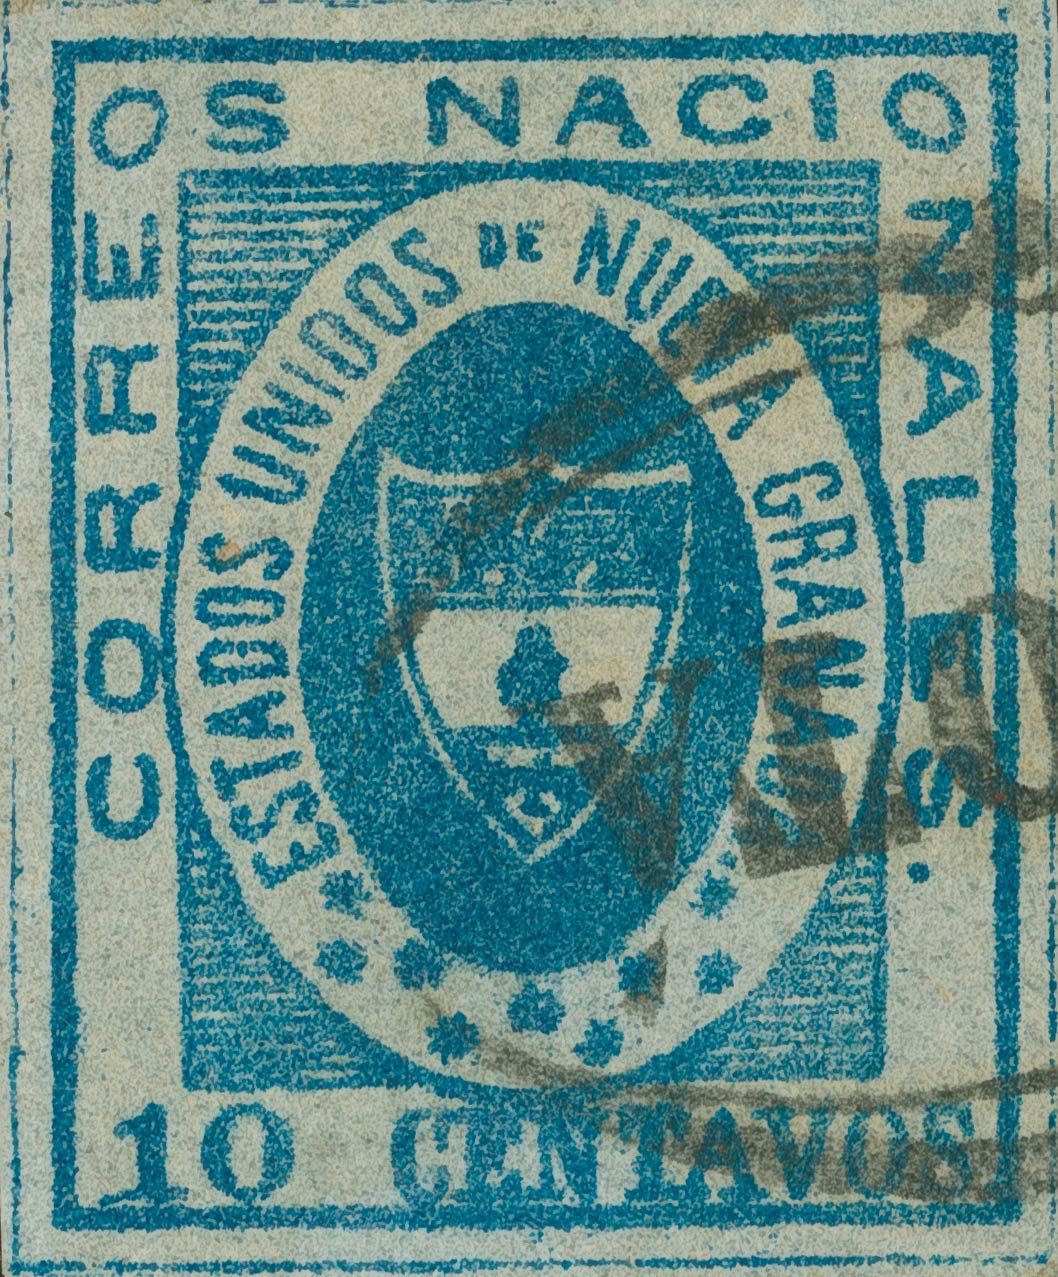 Colombia_1861_Coat_of_Arms_10_centavos_Sperati_Forgery